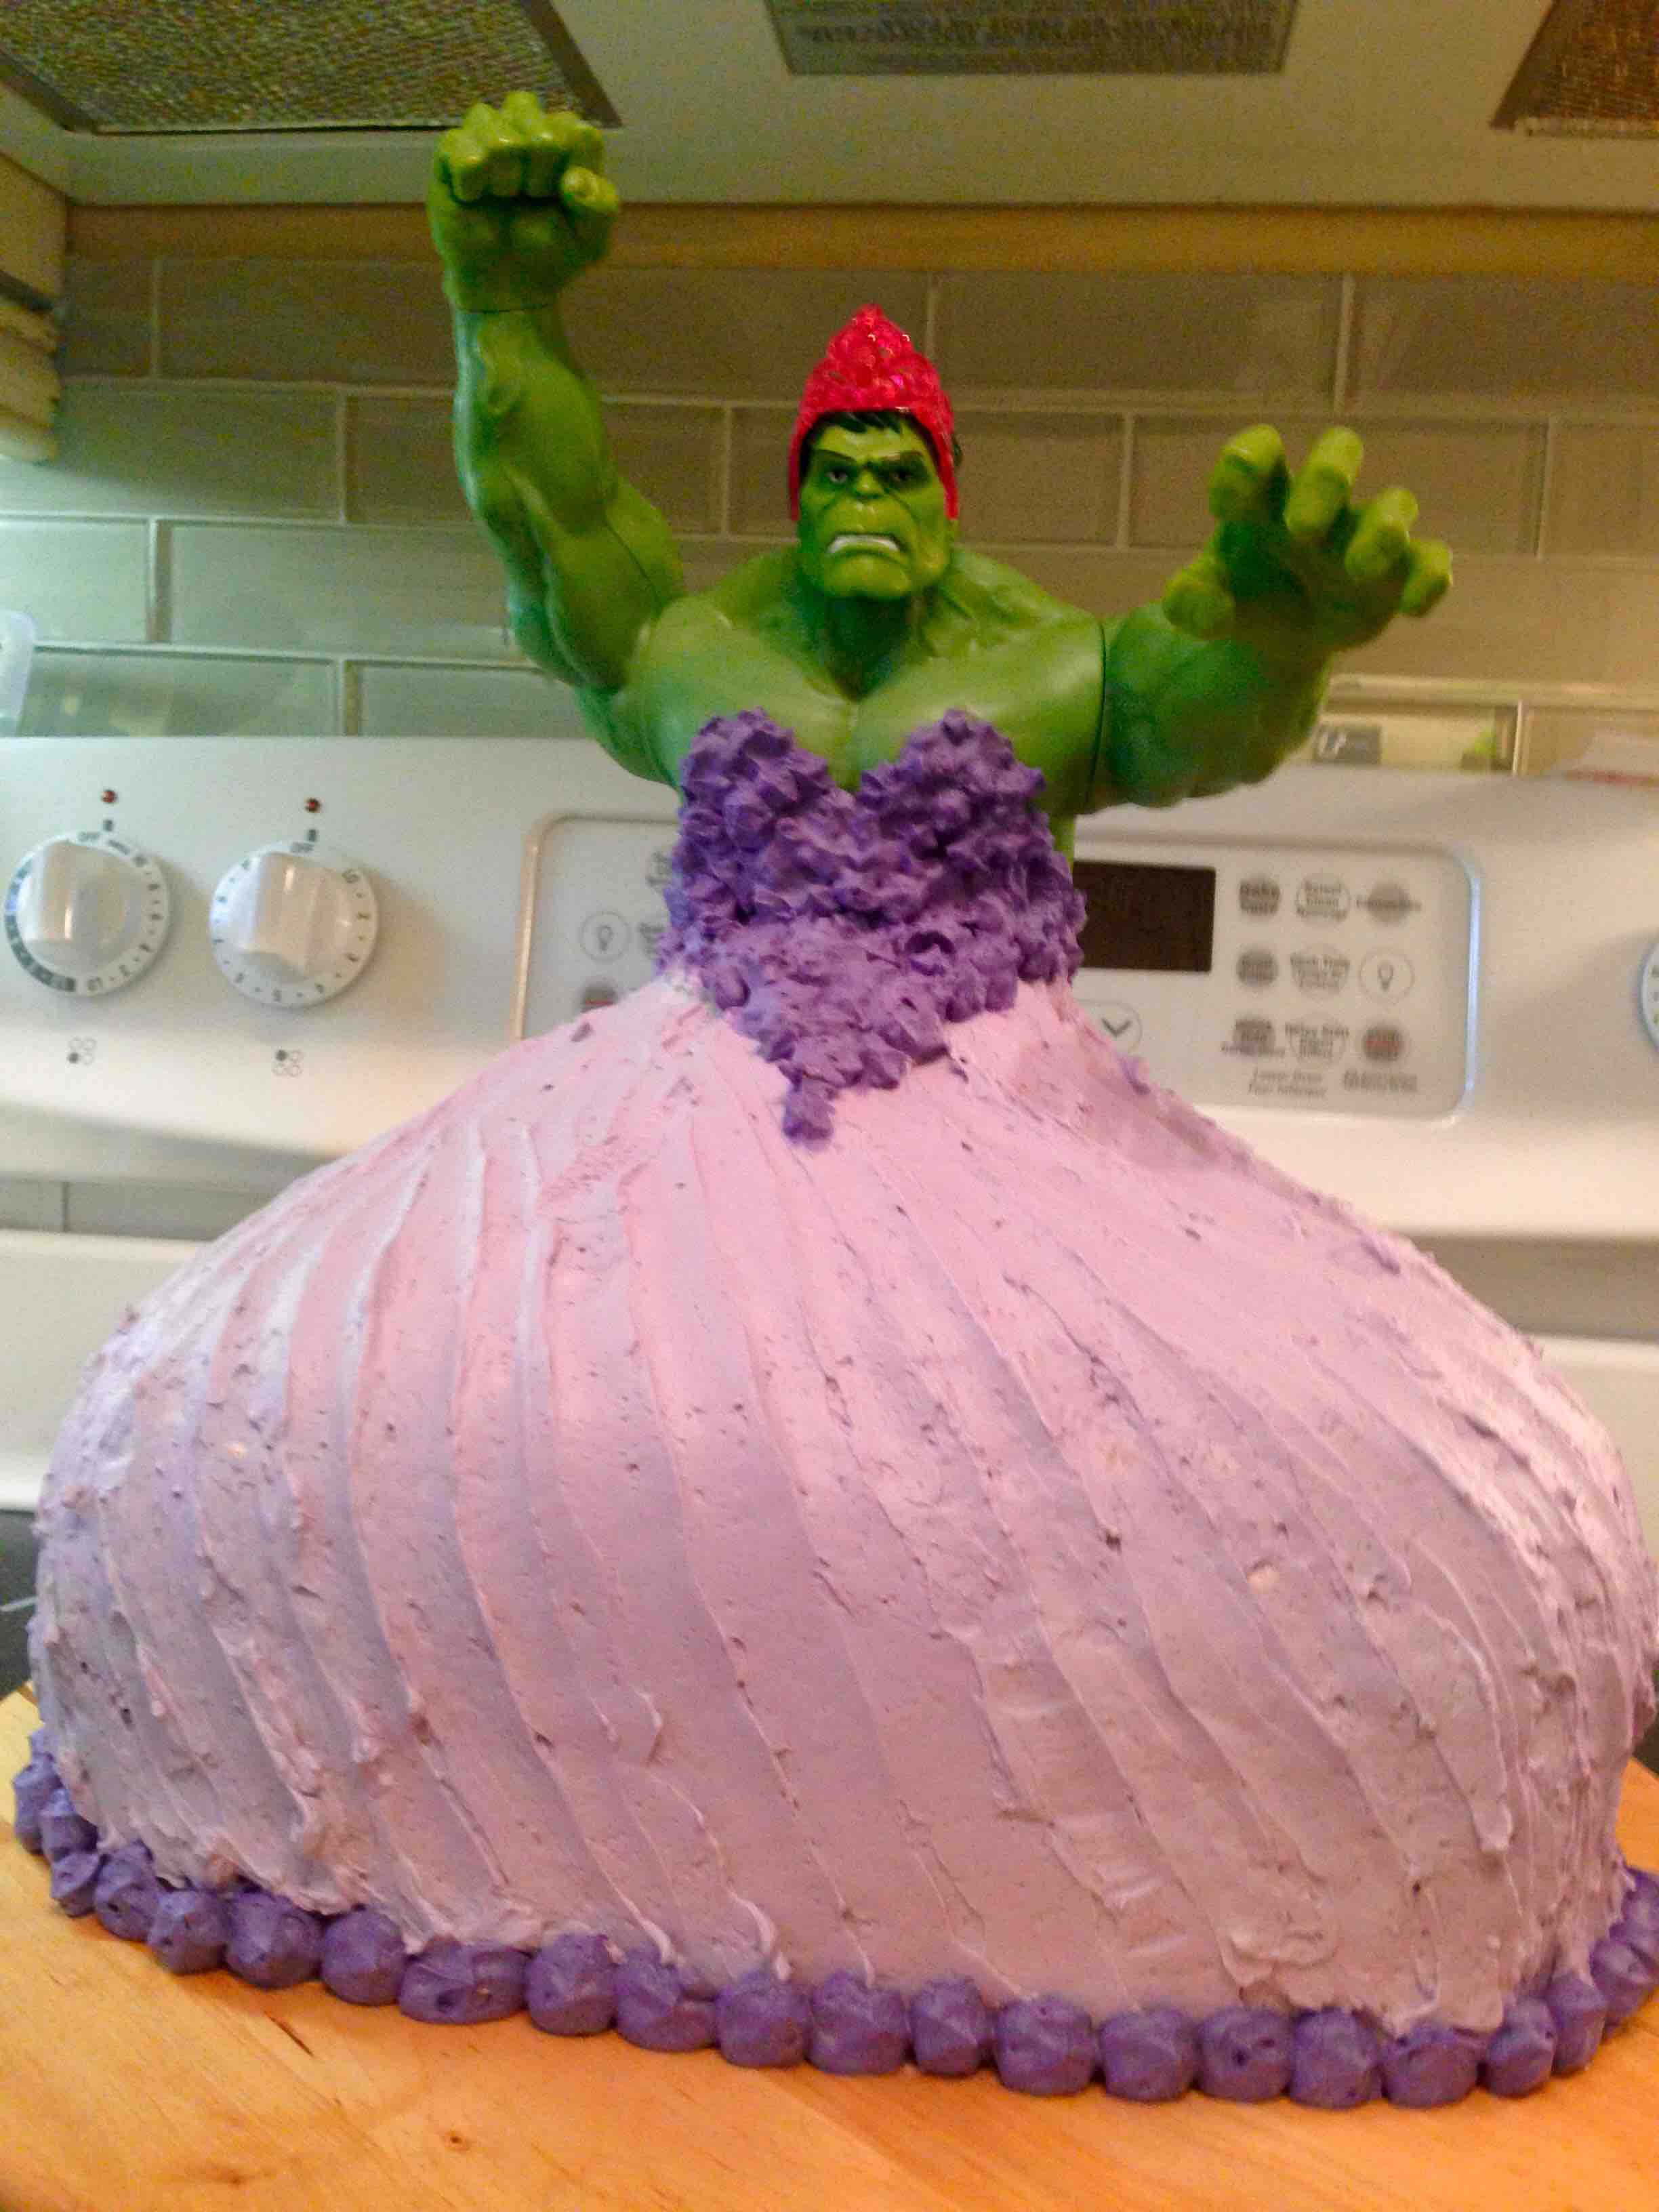 His twin daughters asked for a Princess Hulk birthday cake He